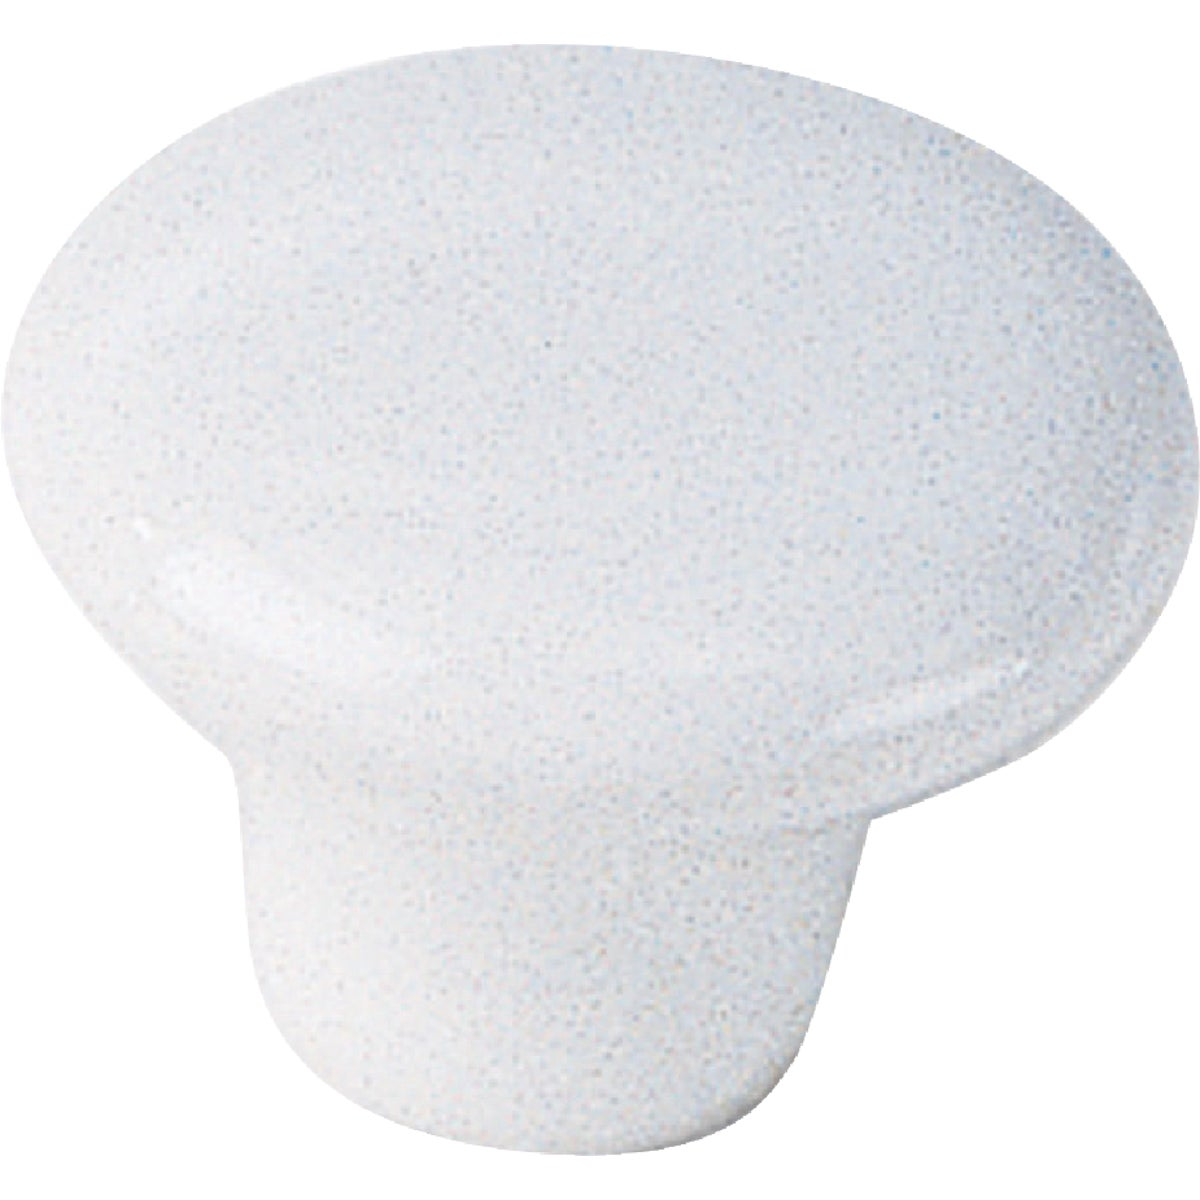 "1-1/4"" CER KNOB - 02942 by Laurey Co"